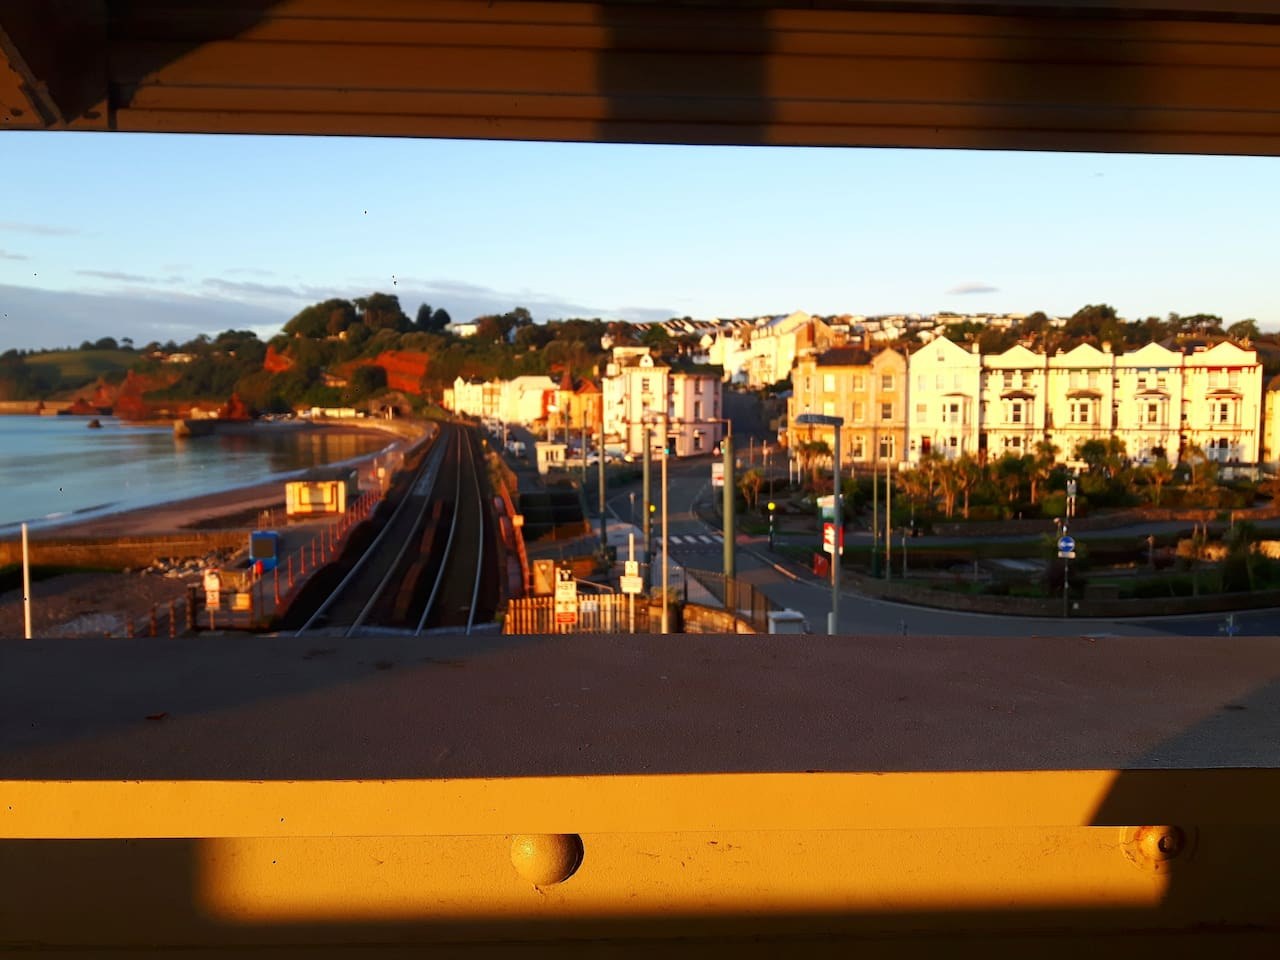 On the row of Town Houses, my appartment is on the top floor of the last building on the right with the red coving... right opposite Dawlish train station AND THE BEACH!!!